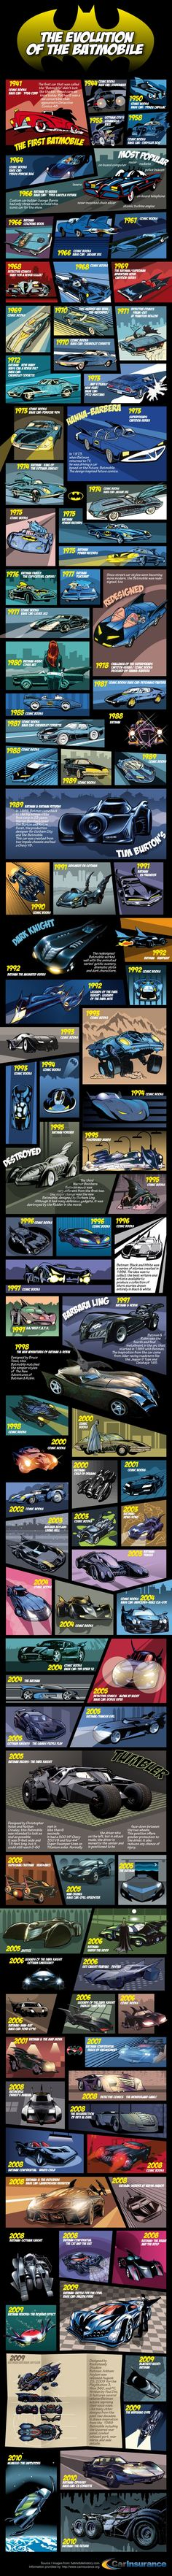 History of the Batmobile. Most of the Batmobiles were actually pretty ugly. The 1992 animated series and the Adam West/Burt Ward ones will always be my favorite.